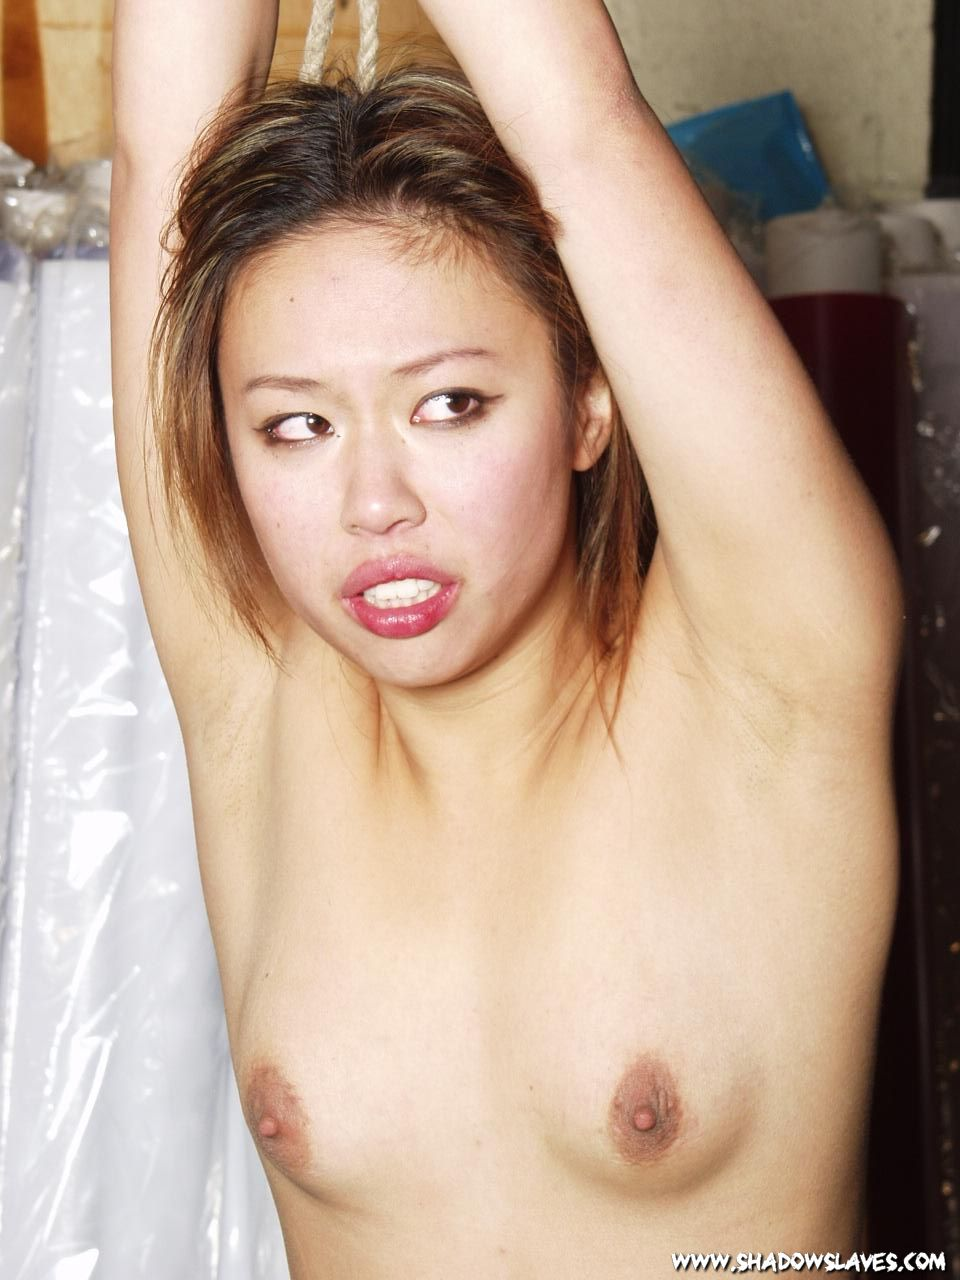 Amusing pussy asian tigers whipped assured, that you